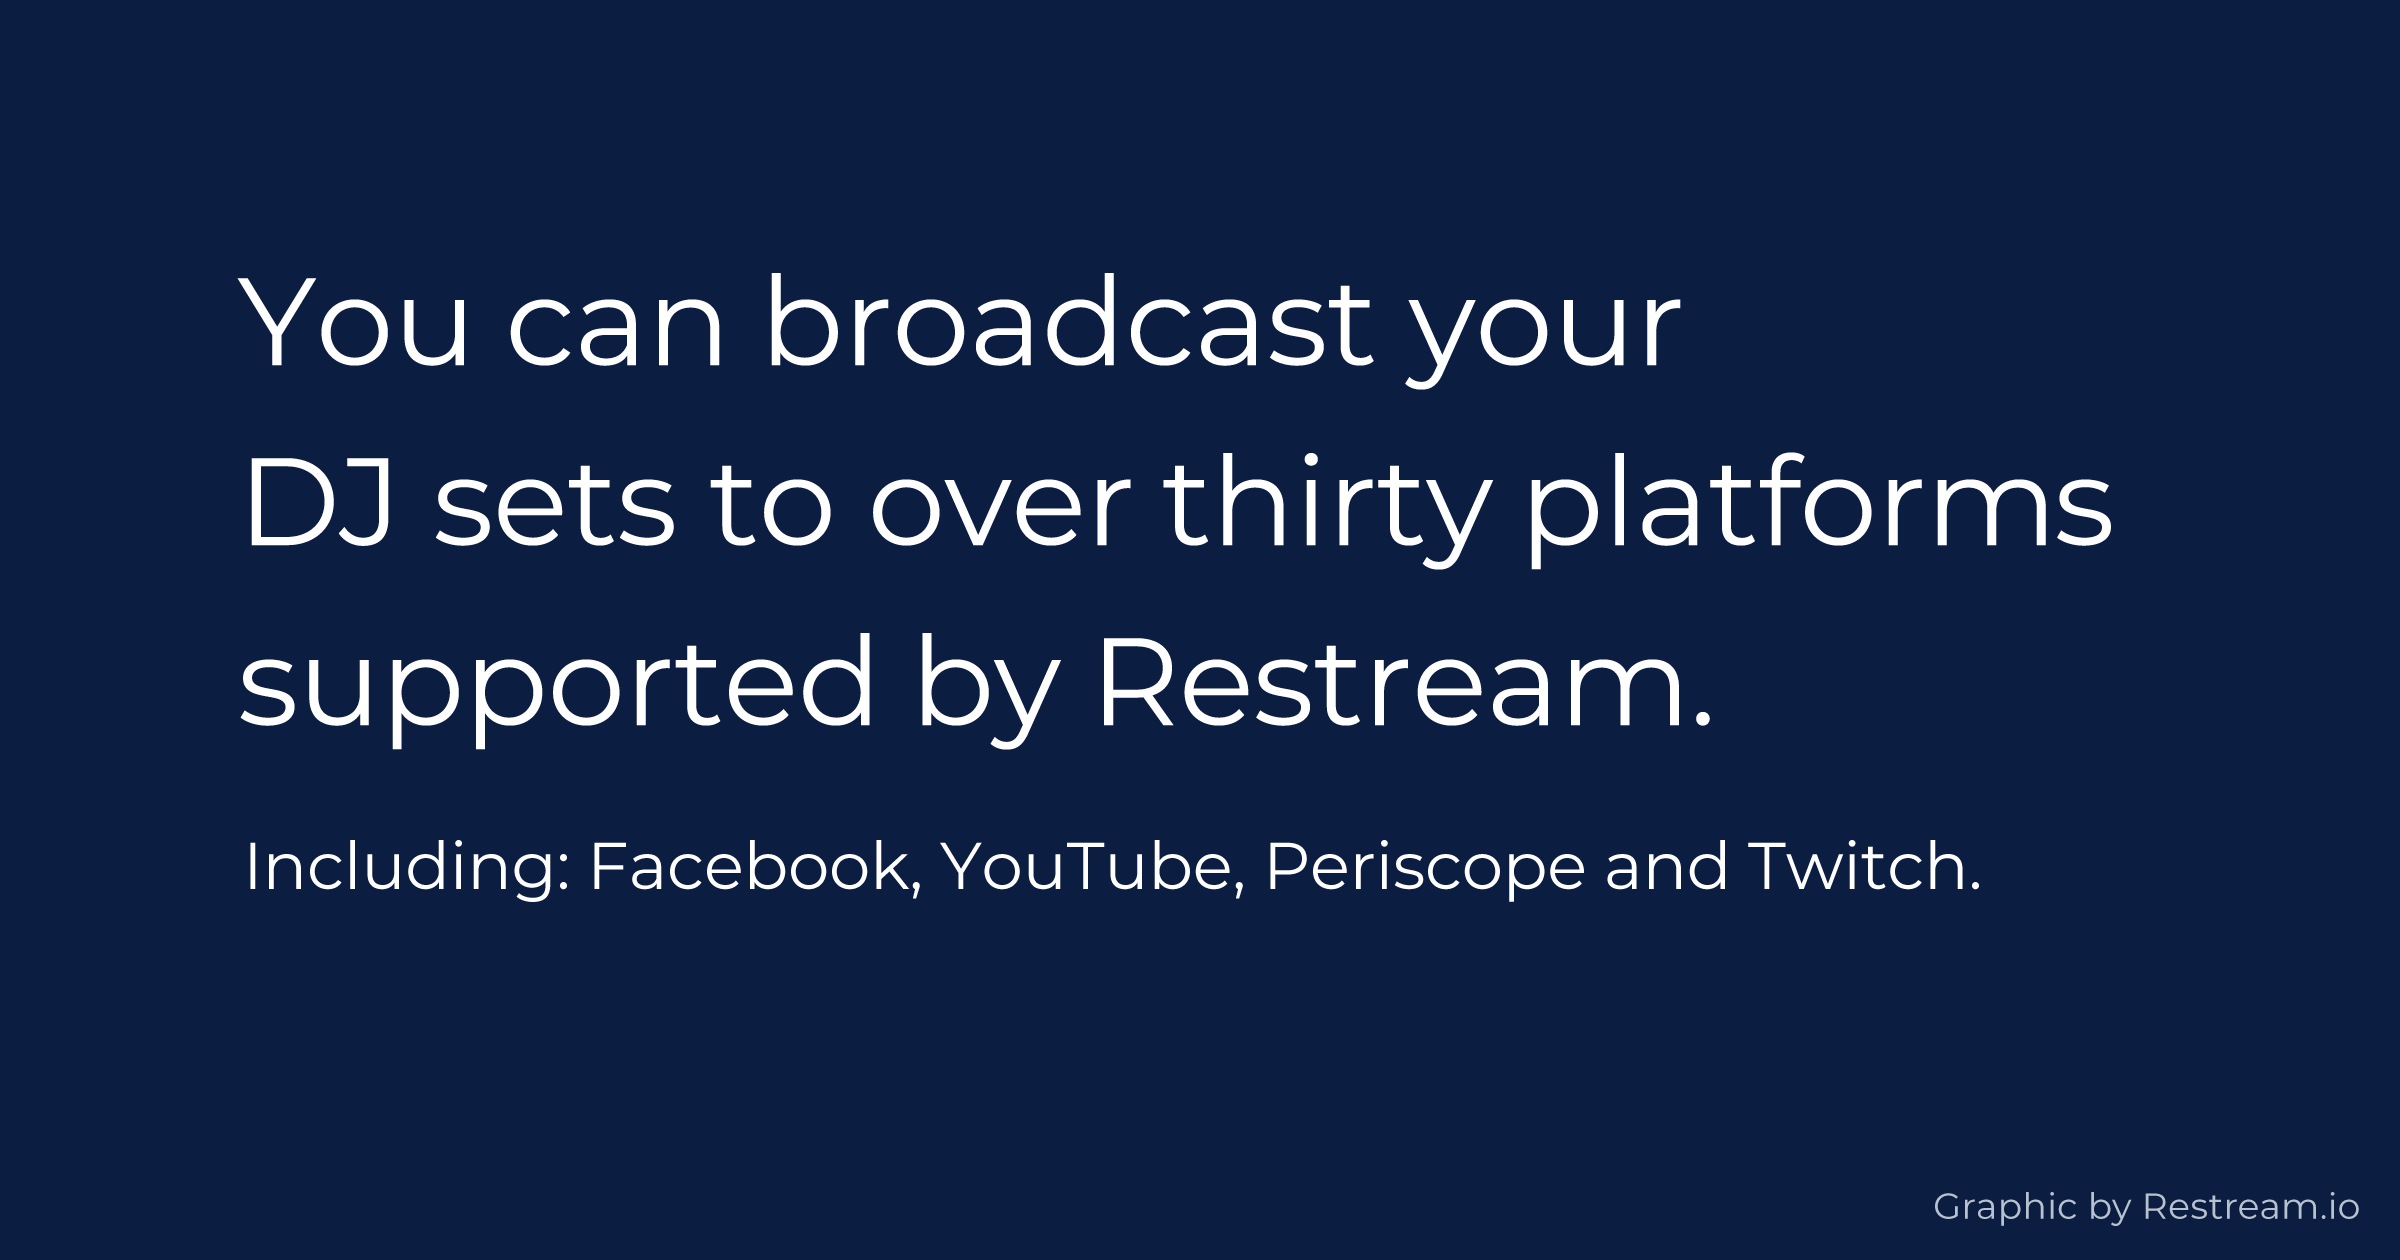 You can broadcast your DJ sets to over thirty platforms supported by Restream